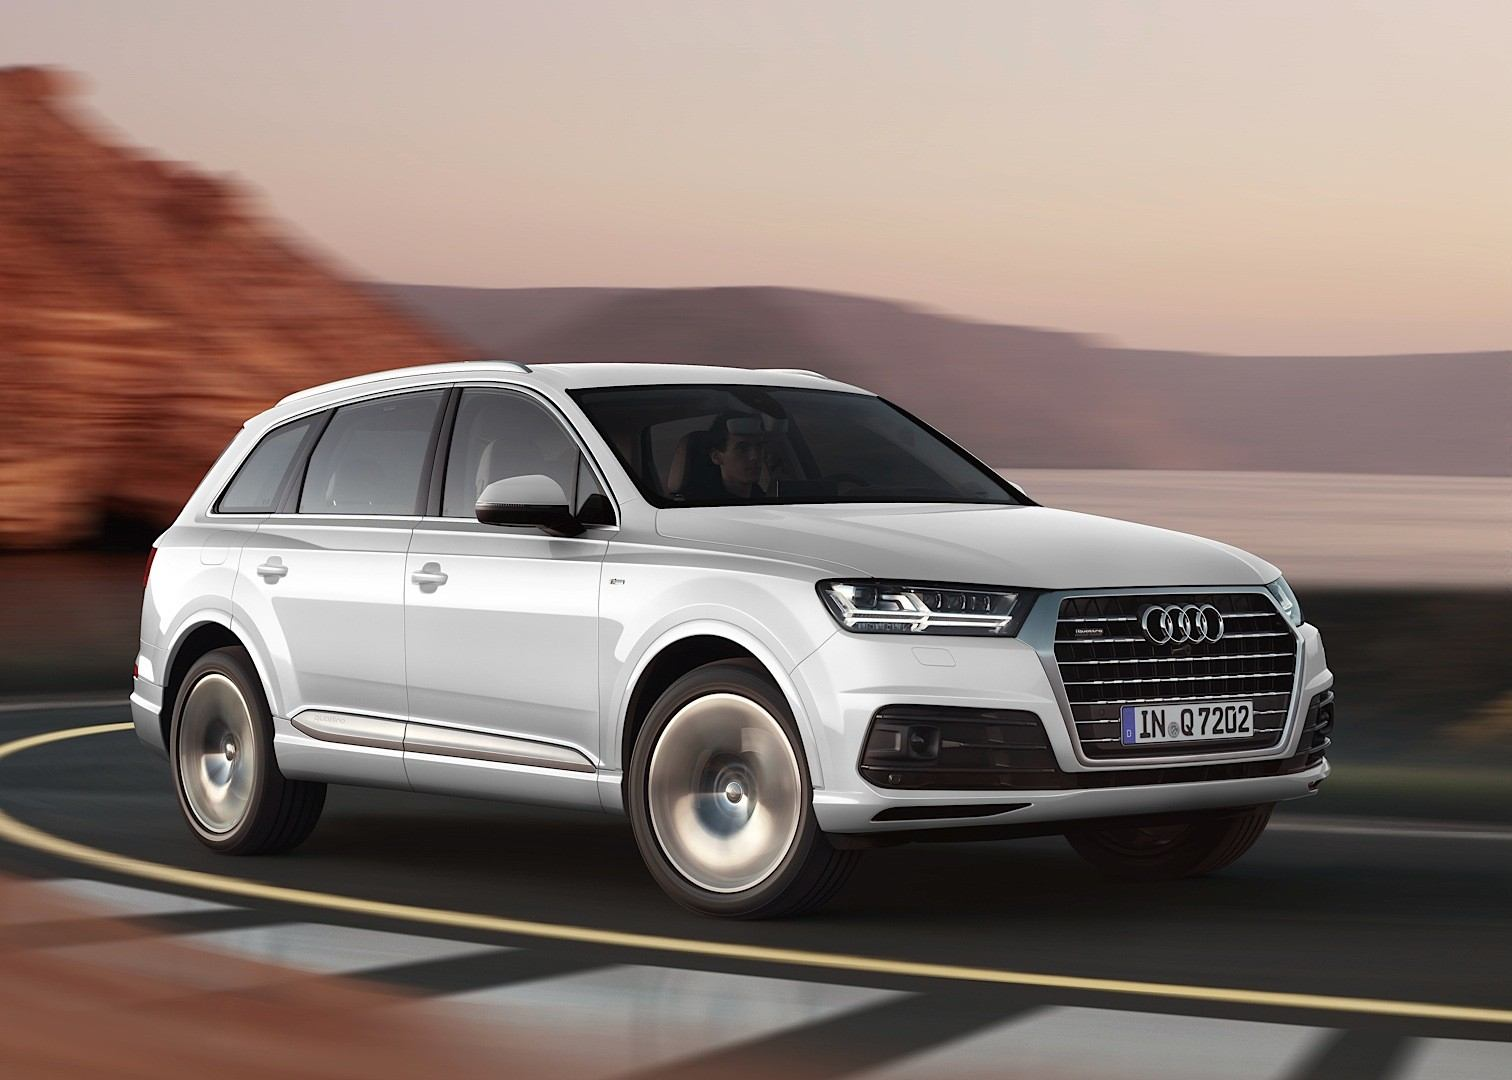 audi-shows-2015-q7-in-new-tofana-white-color-reveals-obsession-with-mountains_3